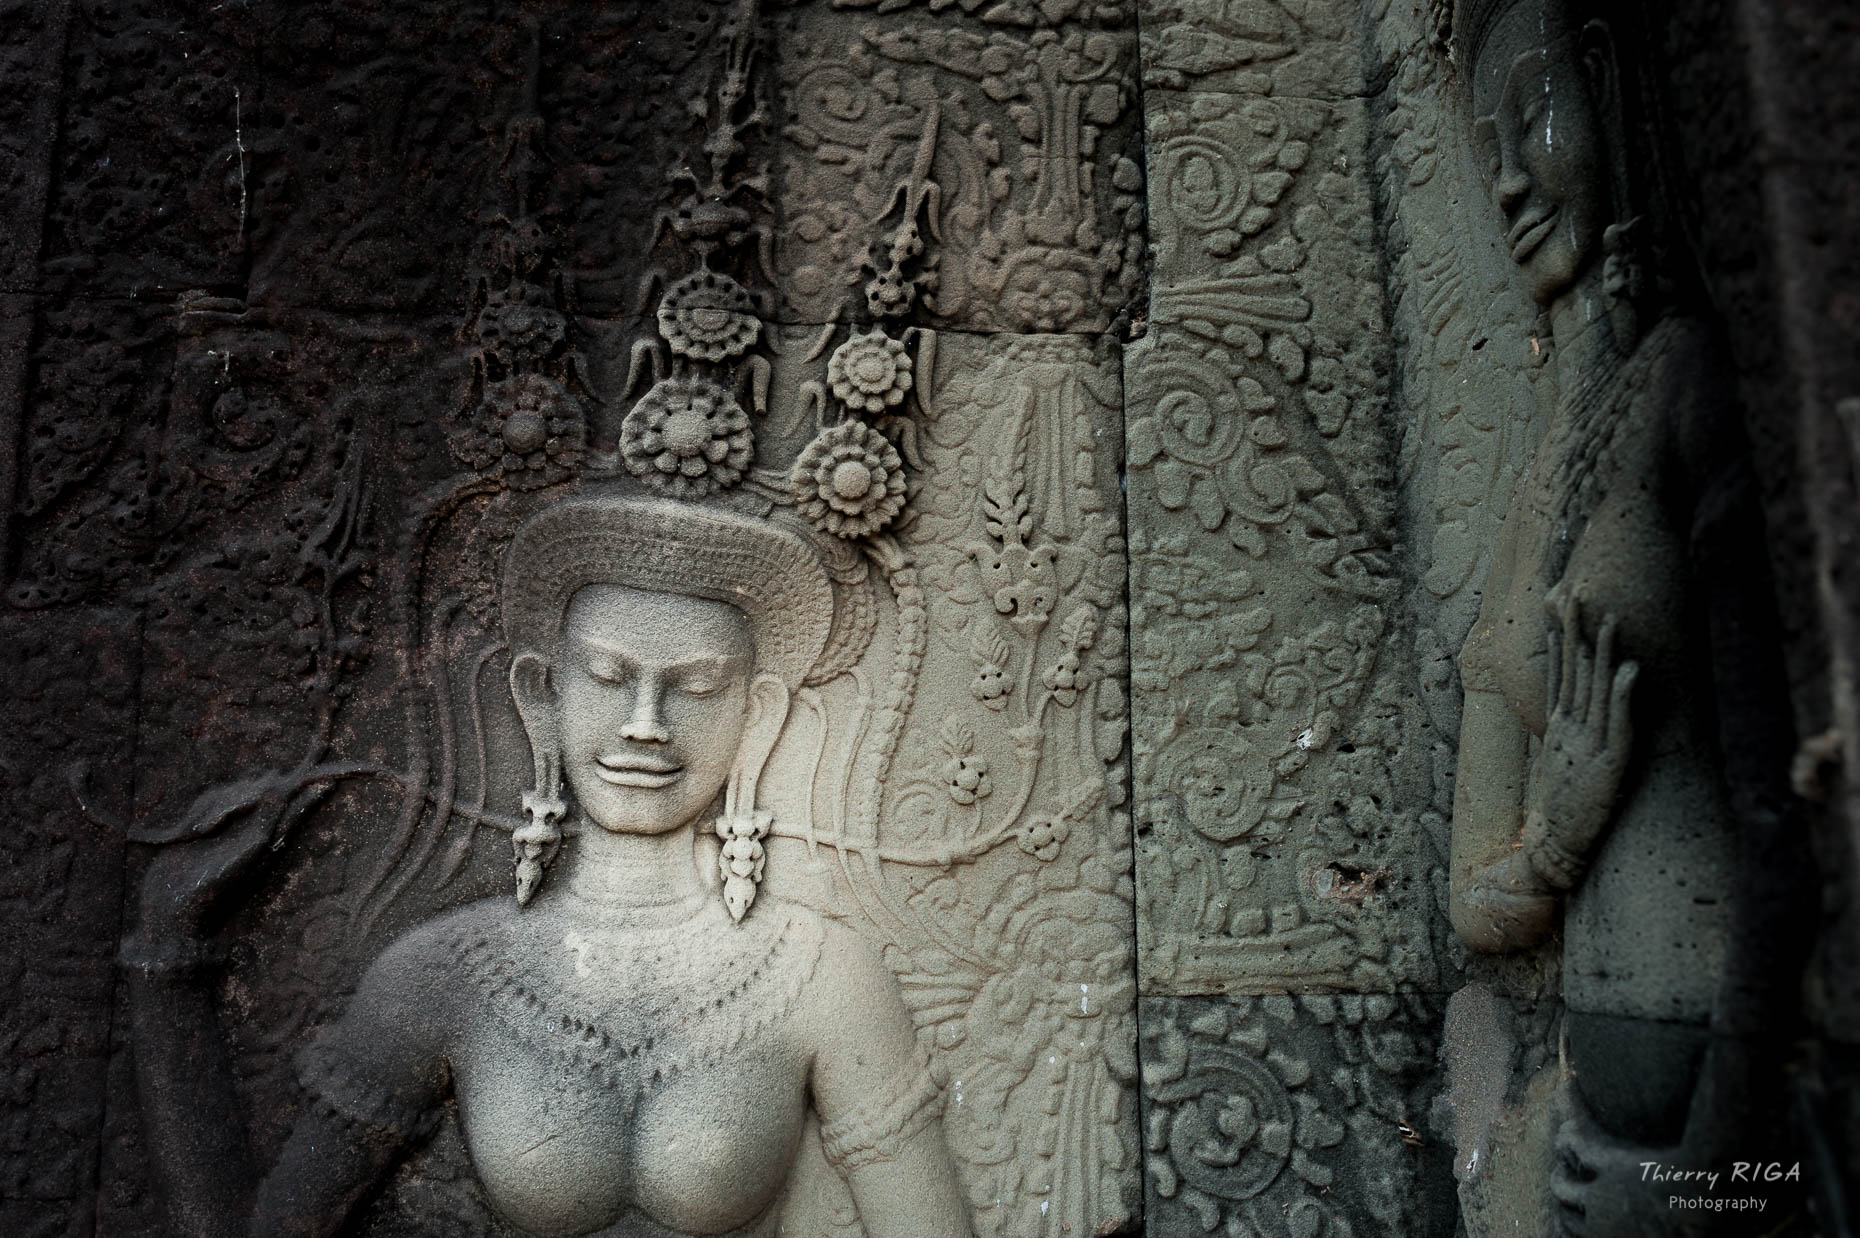 Angkor_Thierry_Riga_photography-_D7C9297Copy_1